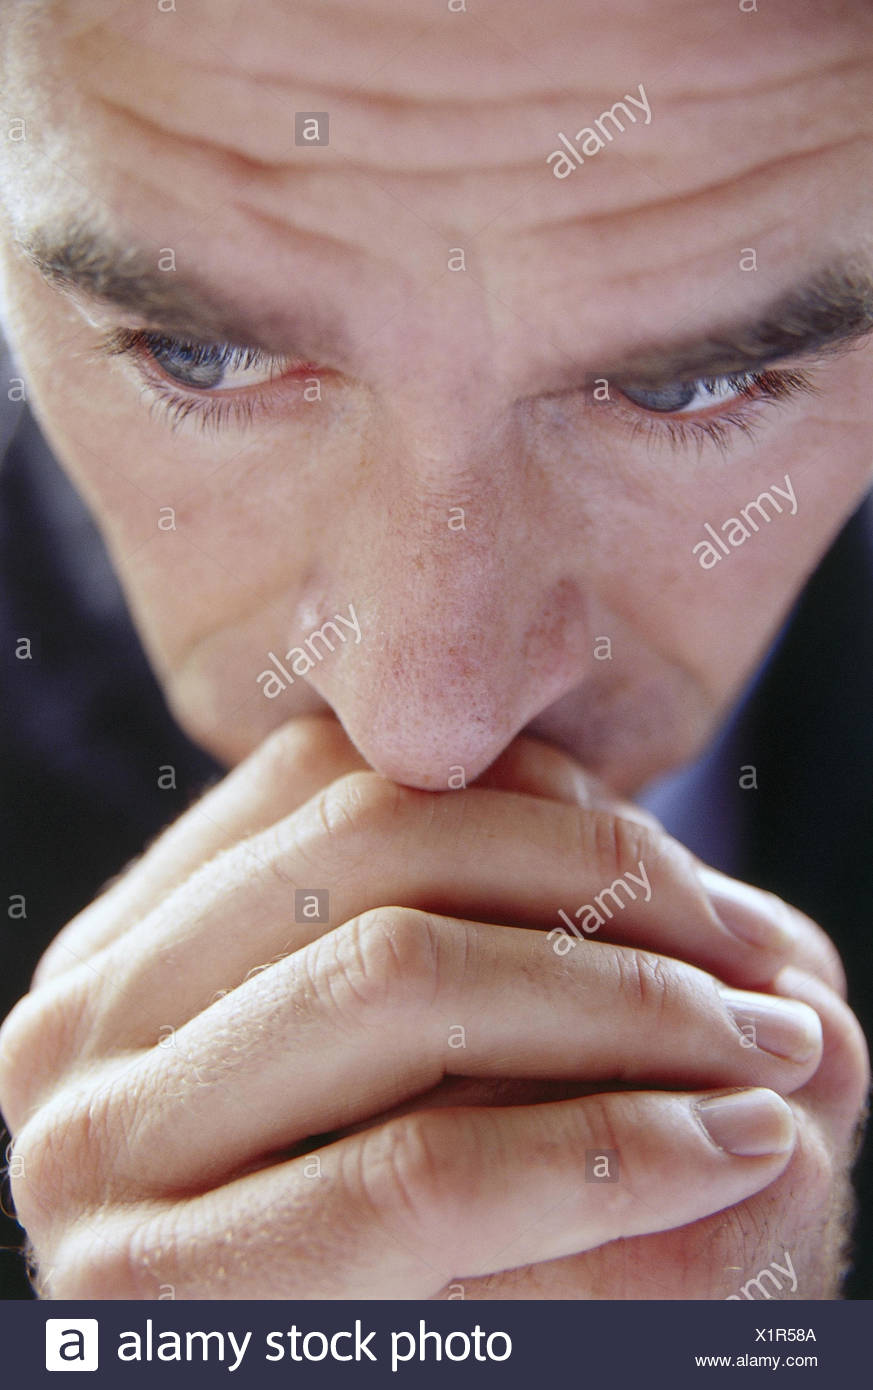 Man, dealts with, gesture, portrait, inside, pray, prayer, hands, rest, quietly, concentrates, concentration, desperately, brood, there think, thoughtful, worries, worried - Stock Image